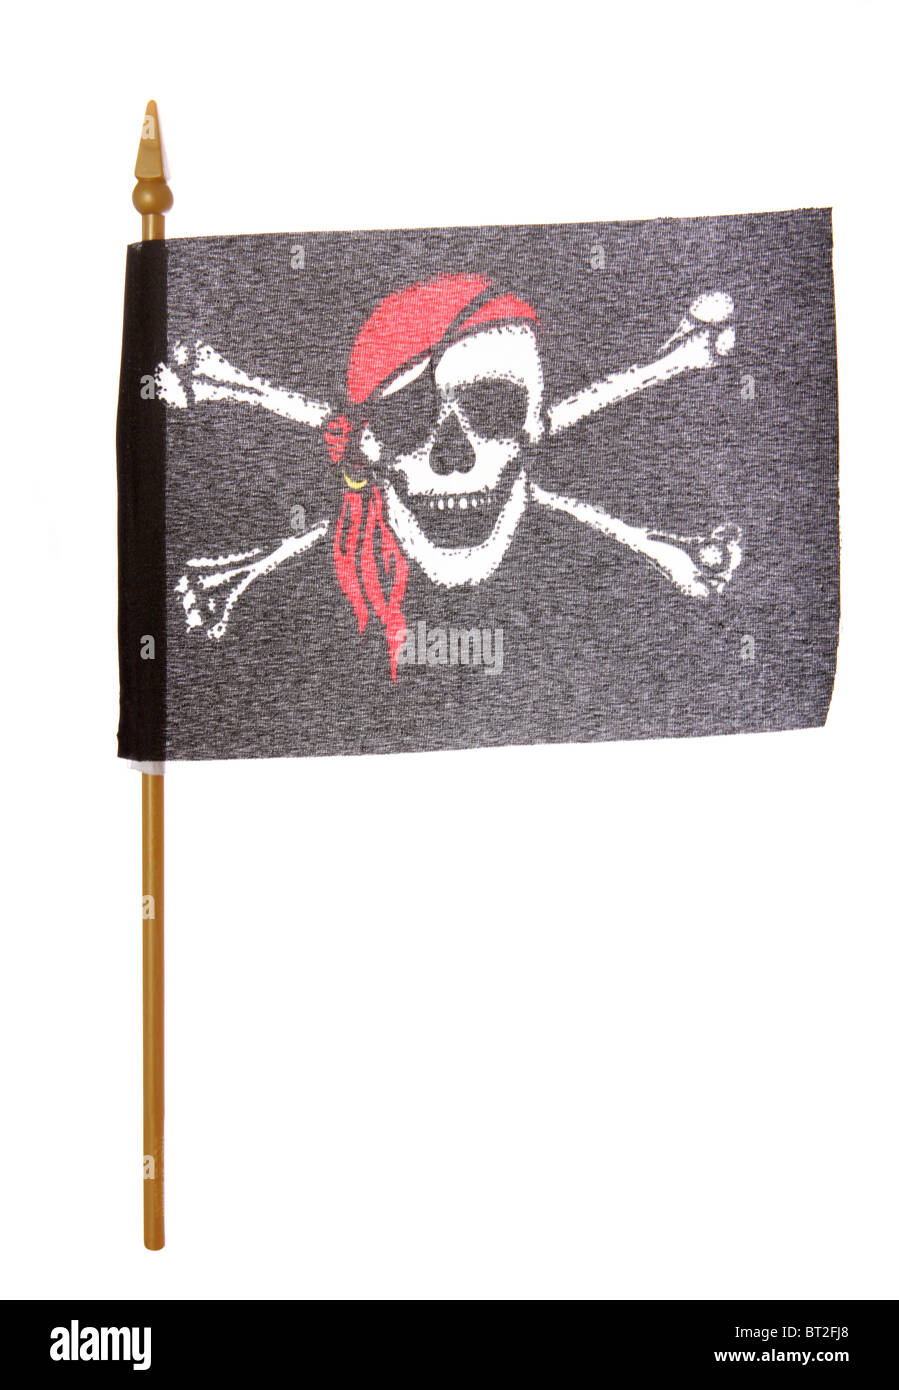 Toy Pirate flag studio cutout - Stock Image